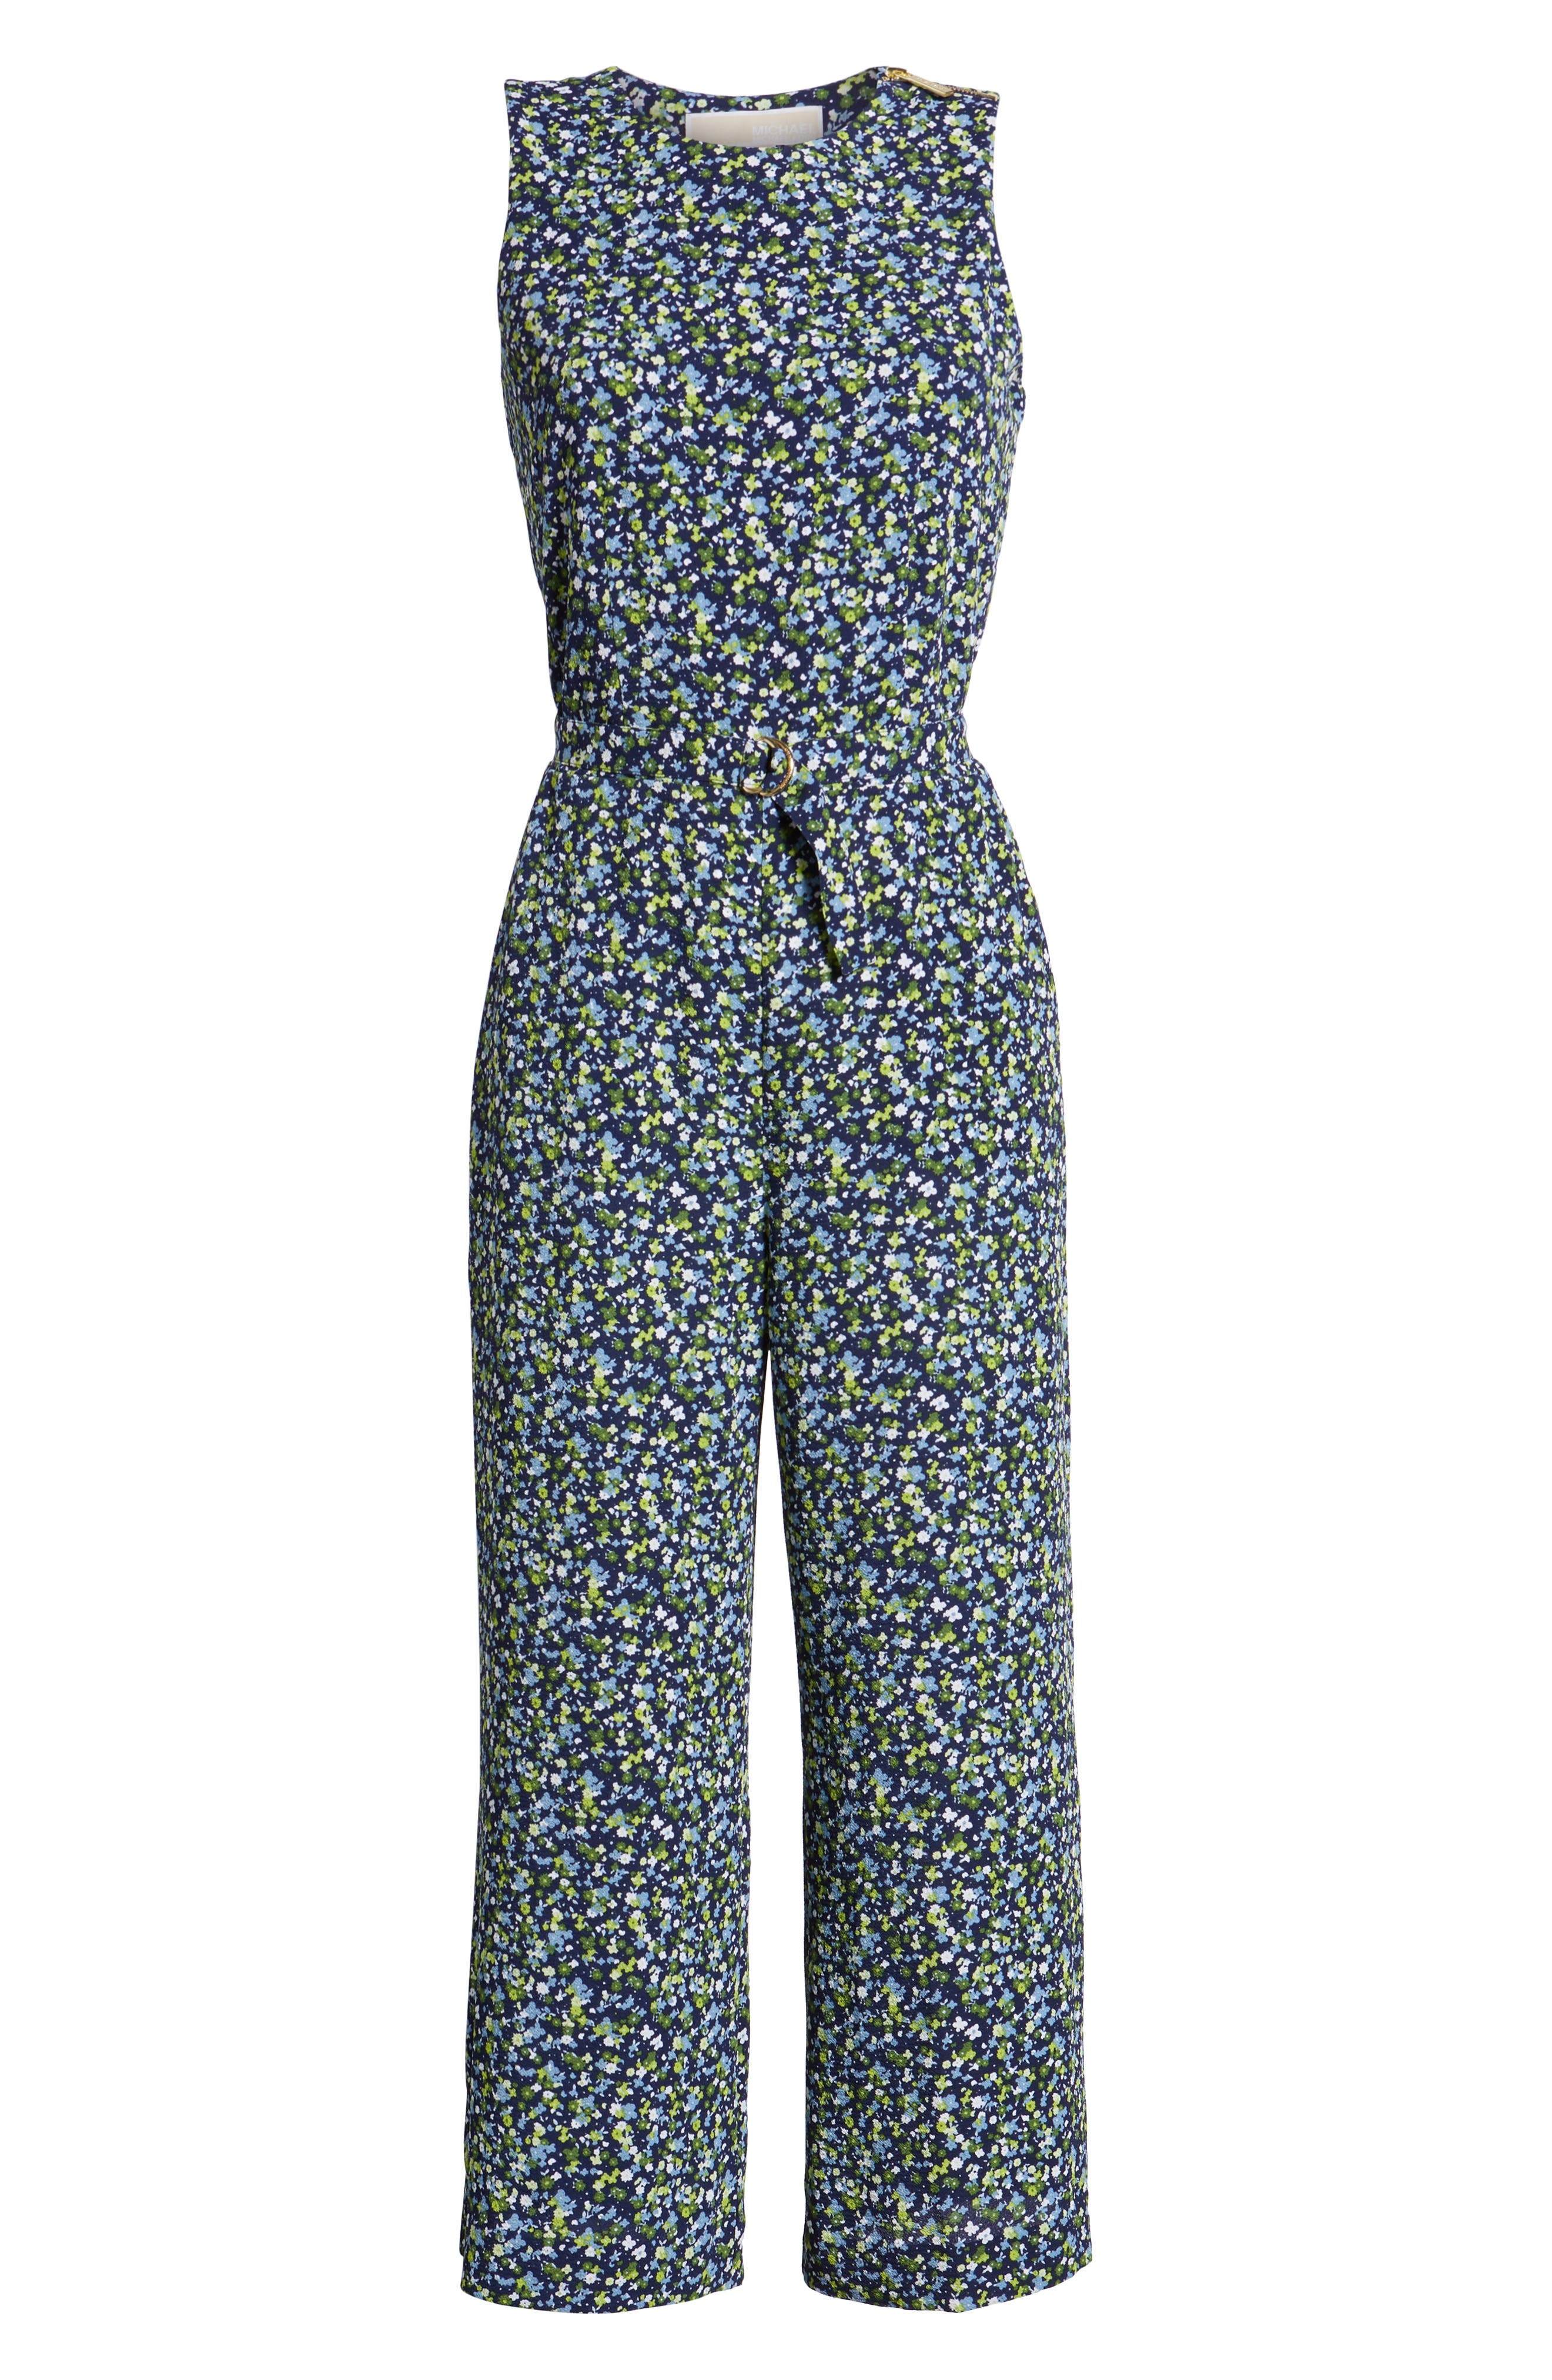 Wildflower Print Jumpsuit,                             Alternate thumbnail 6, color,                             362